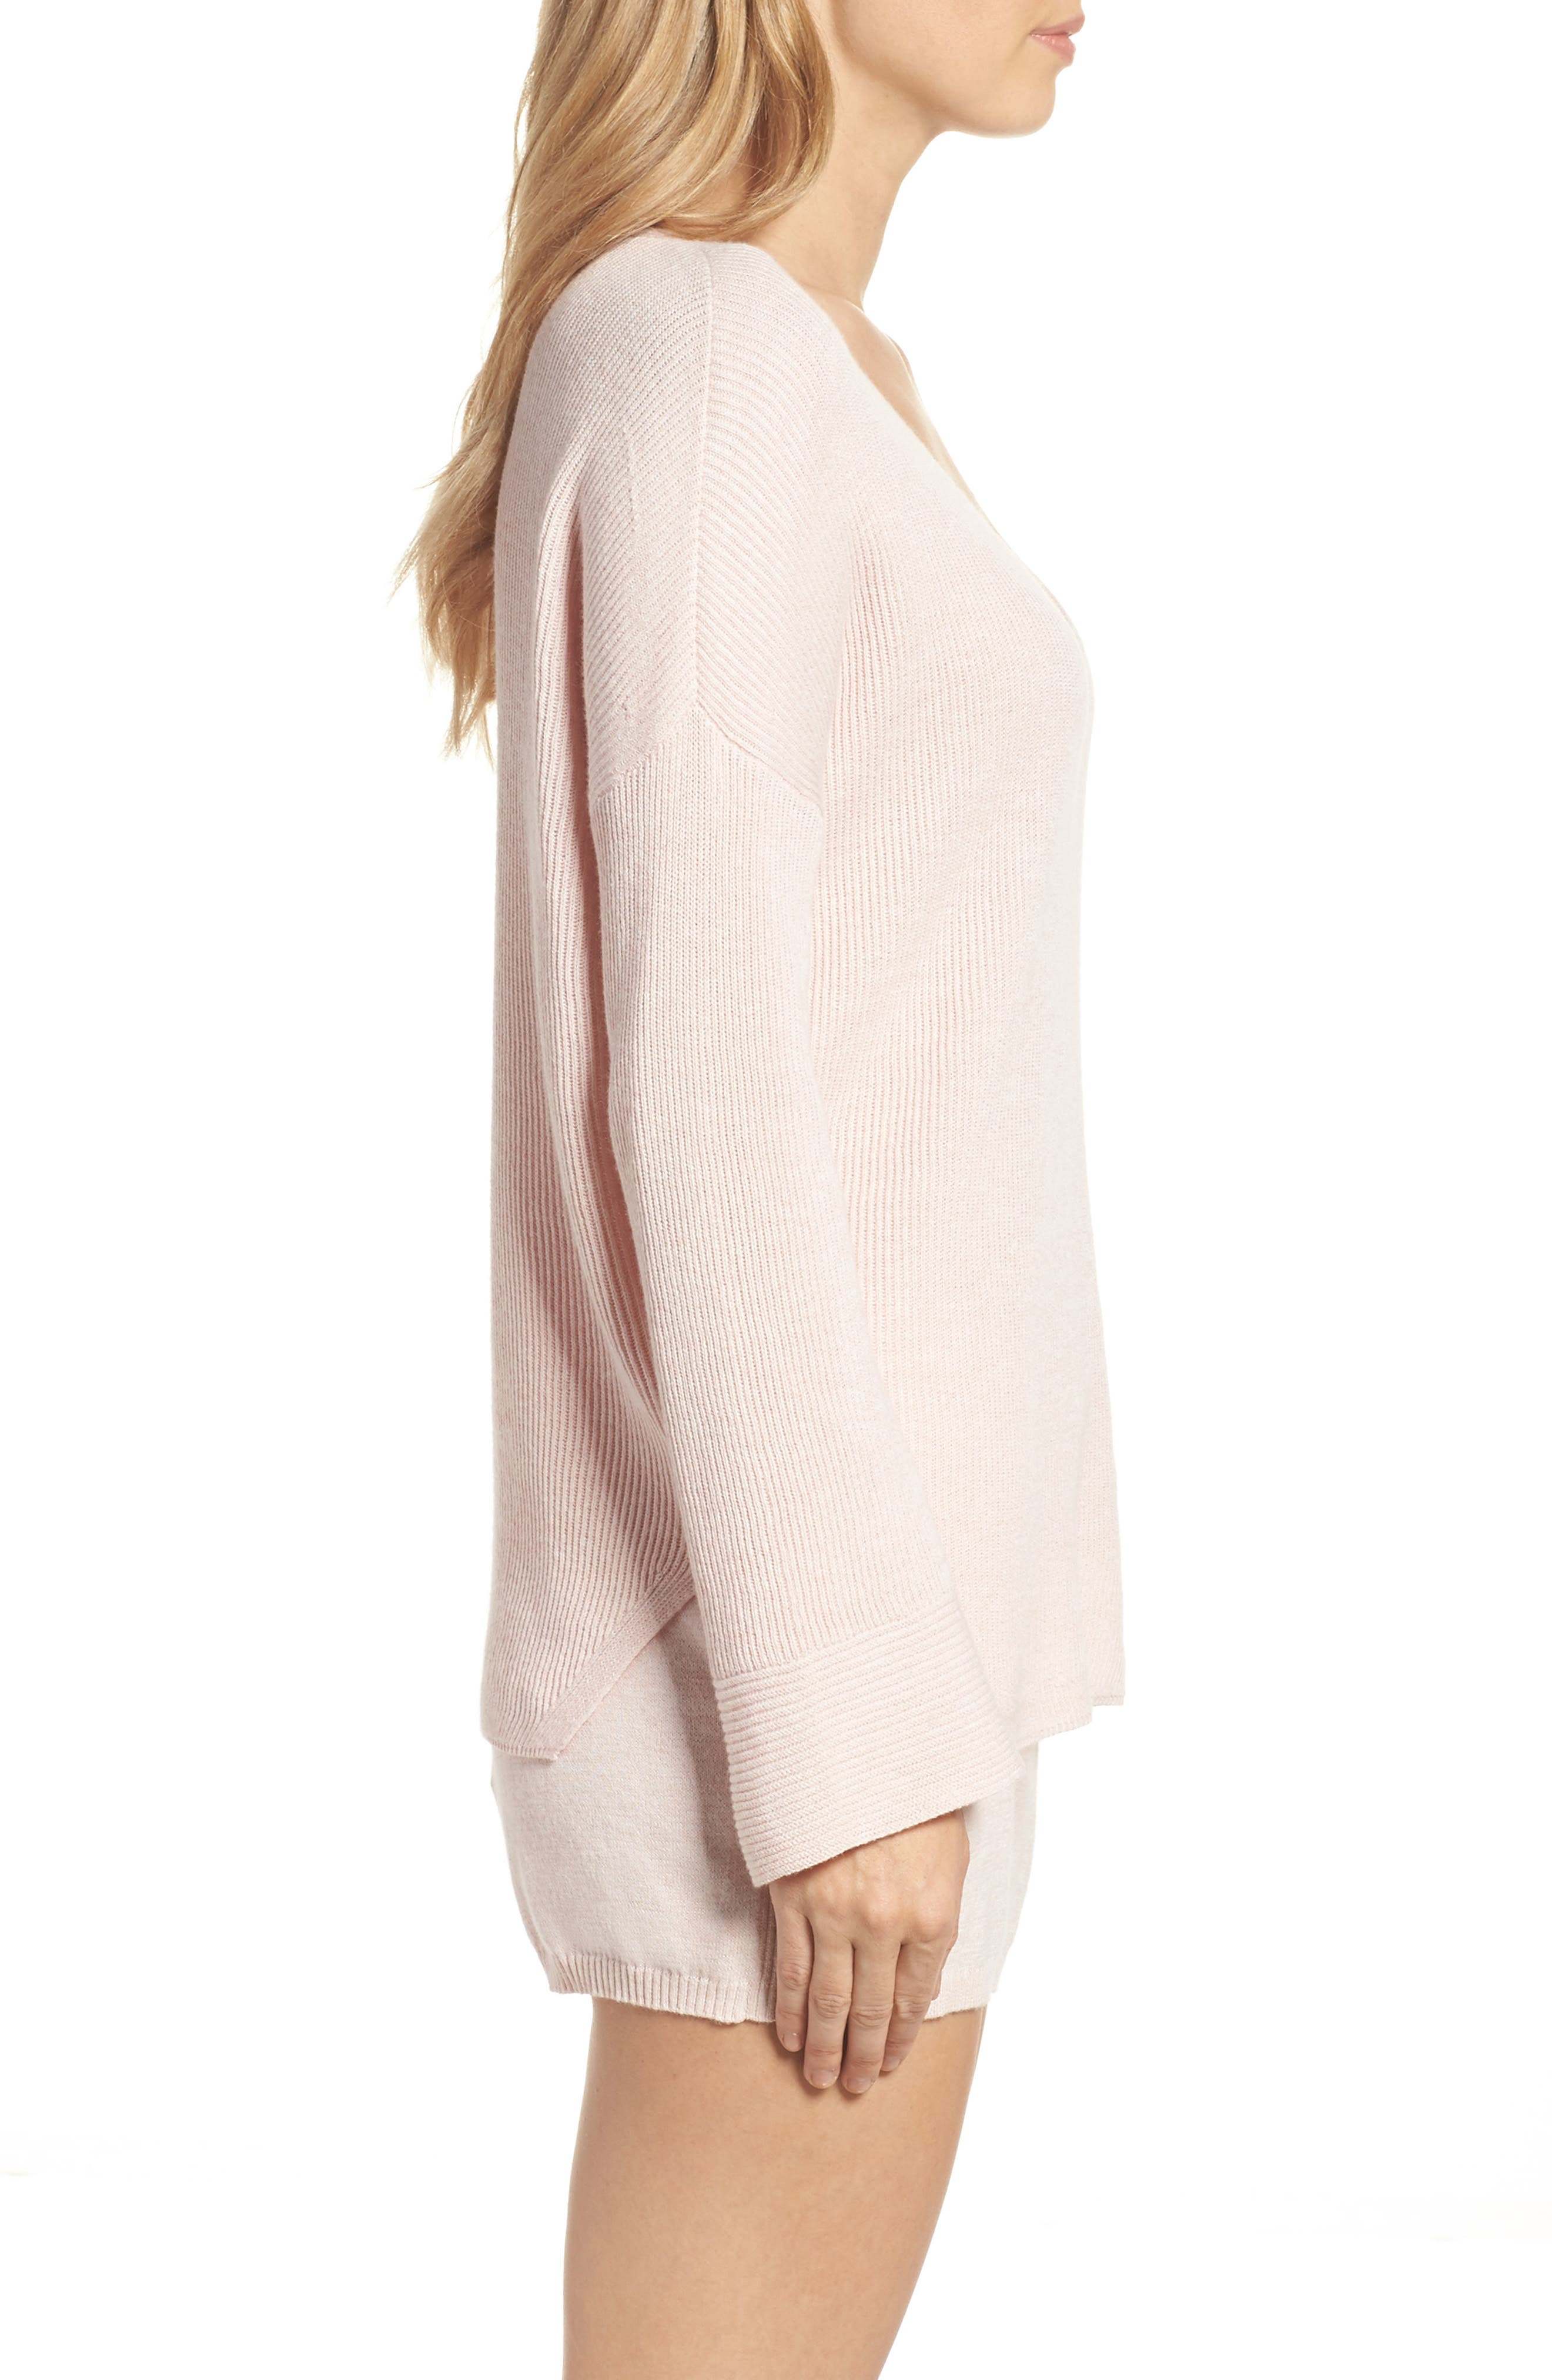 Veronica Lounge Pullover,                             Alternate thumbnail 3, color,                             Soft Pink